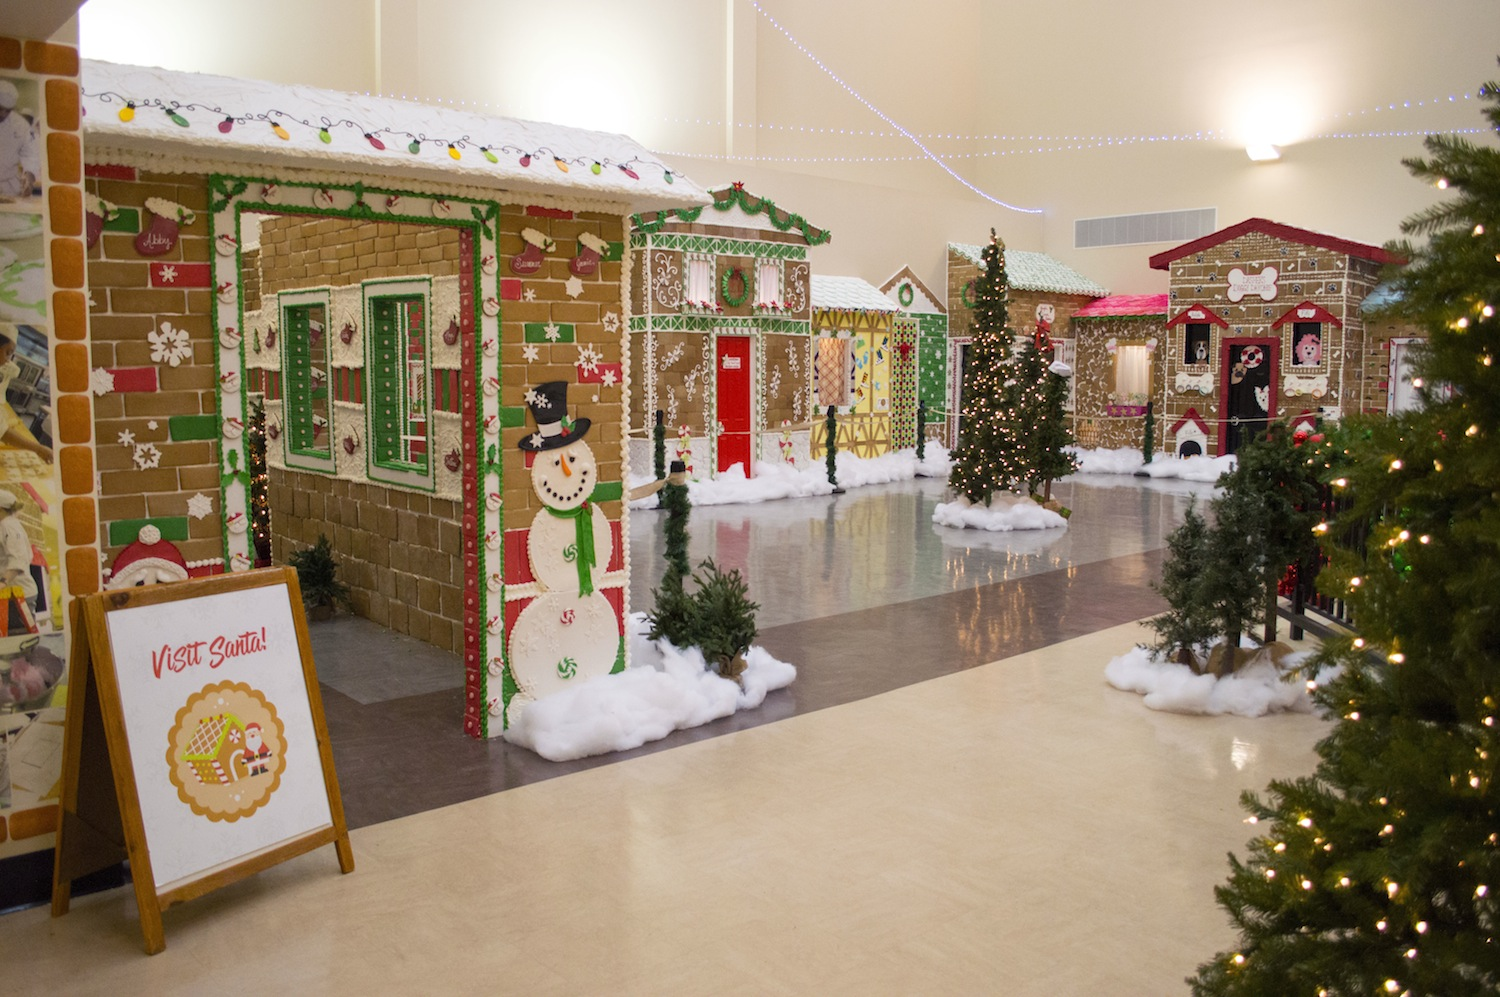 Life-sized gingerbread village at the Niagara Falls Culinary Institute.